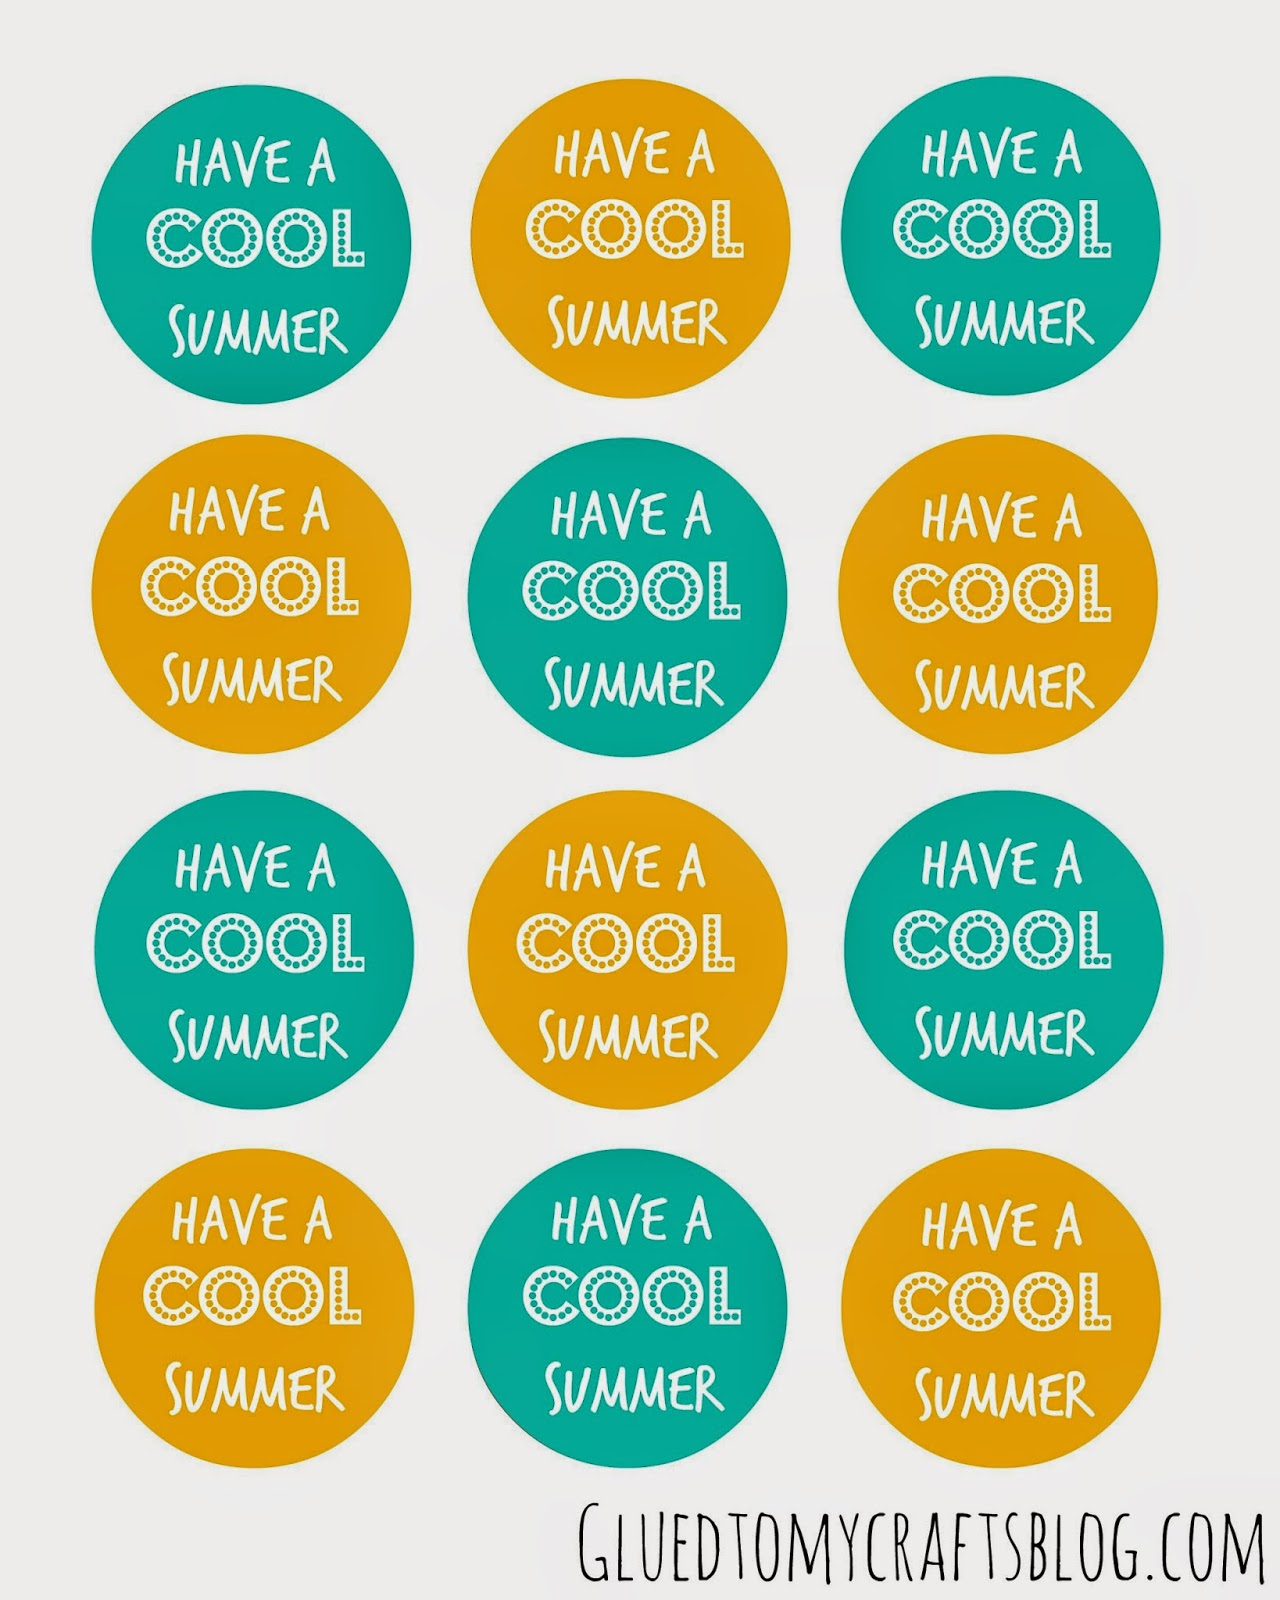 7 Images of Have A Cool Summer Printable Free